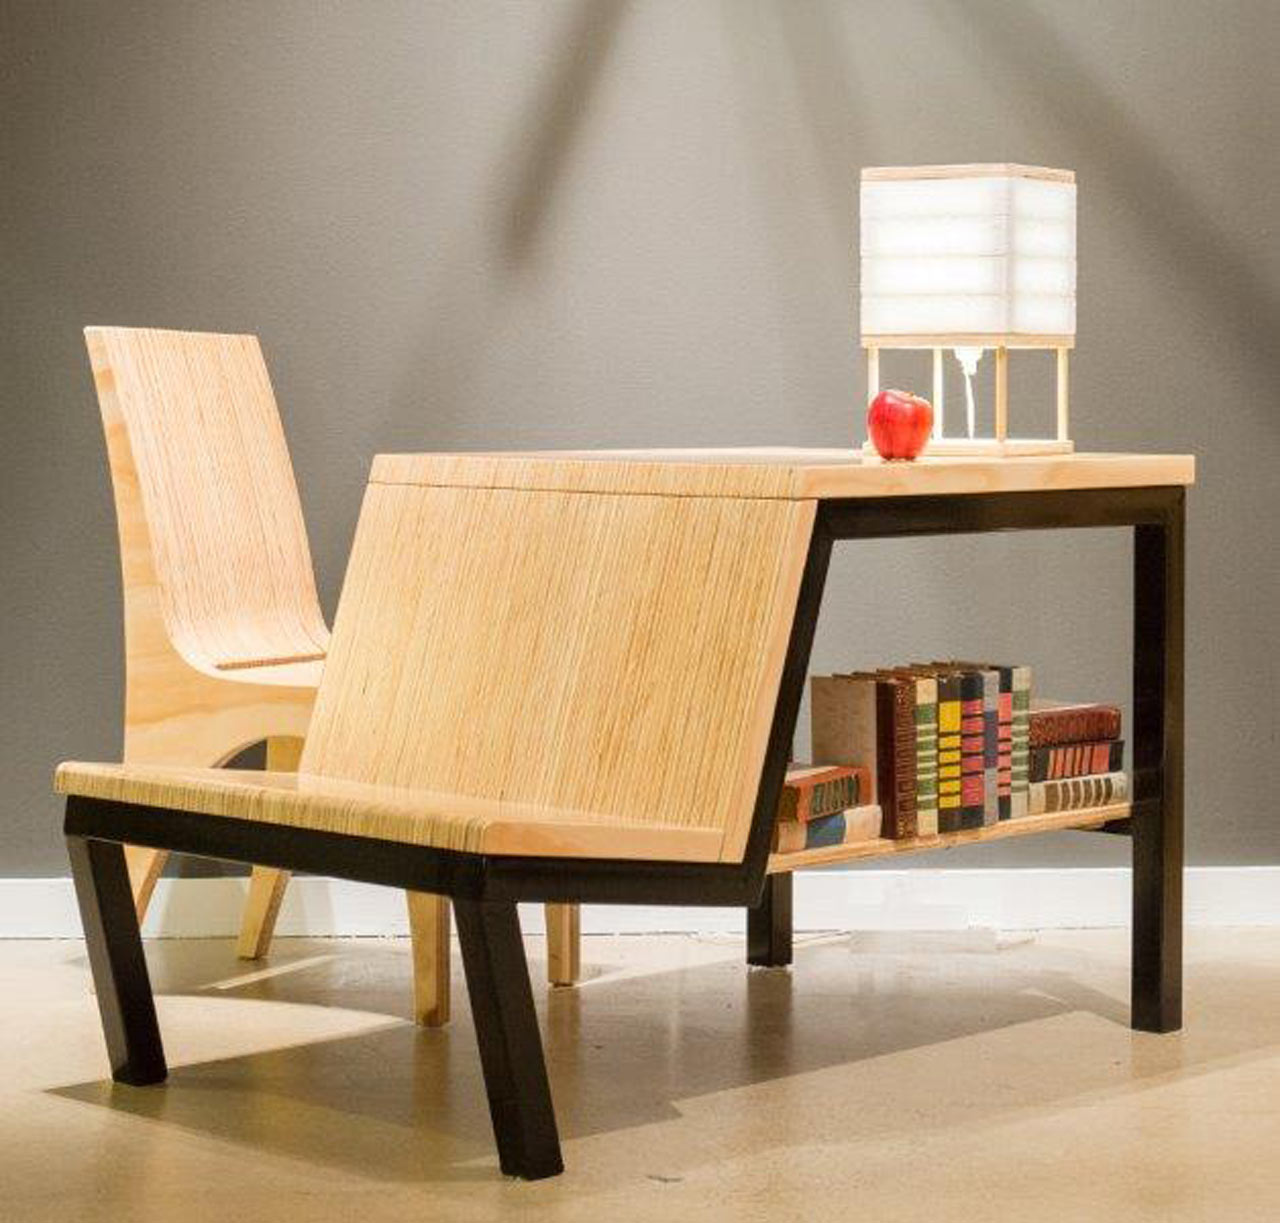 Multifunctional Desk-Table-Chair for Small Spaces - Design Milk